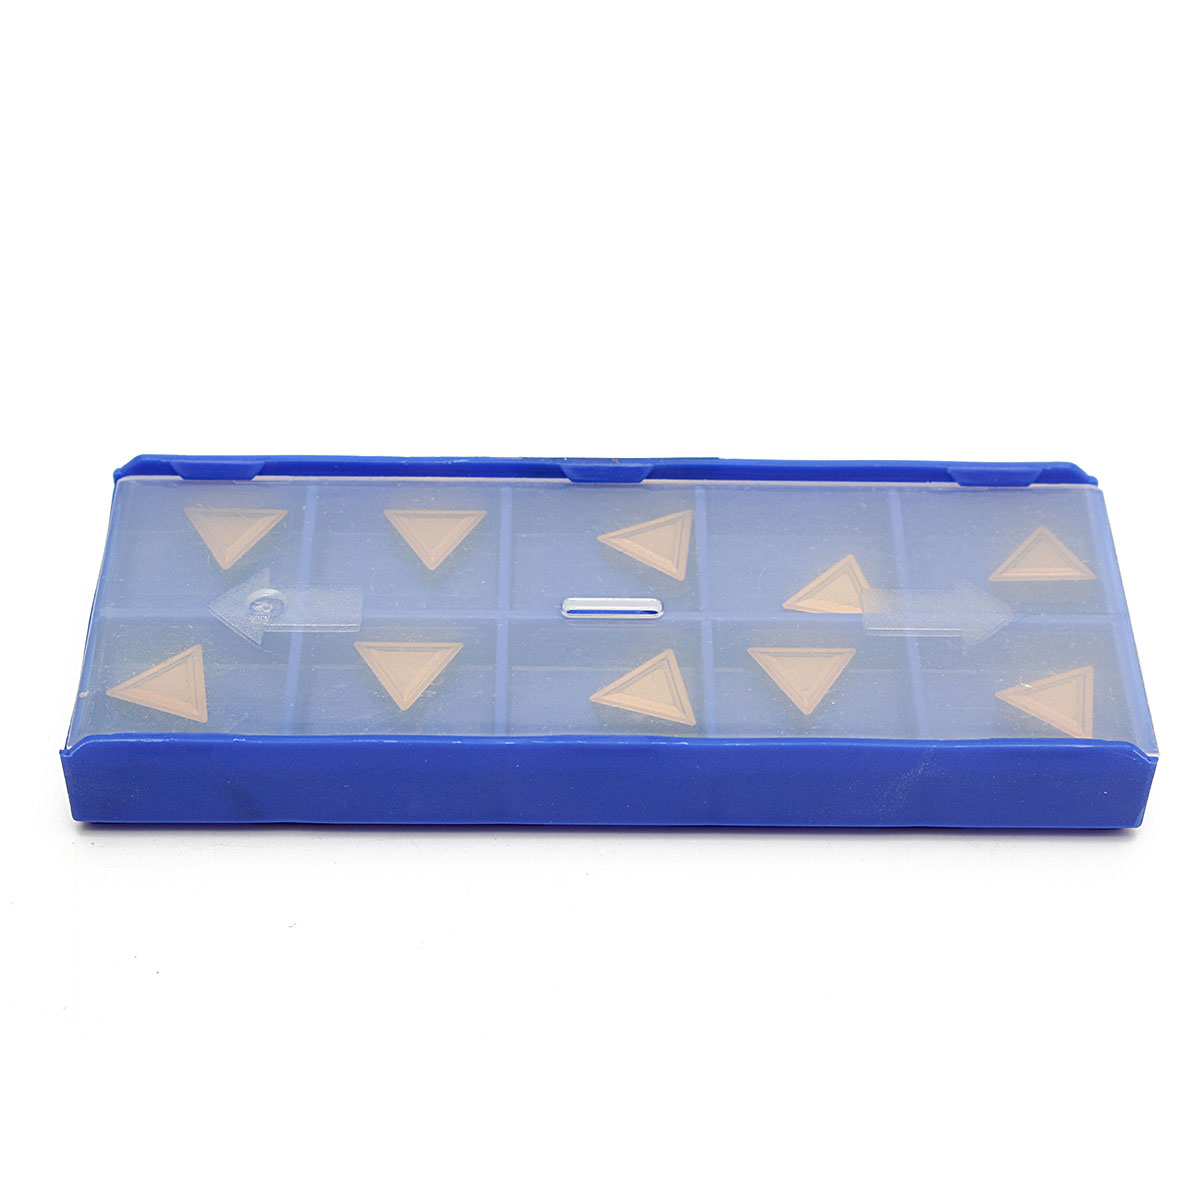 10Pcs TPMR 110304 Triangular Tungsten Gold Carbide Tips Inserts Tool With Box